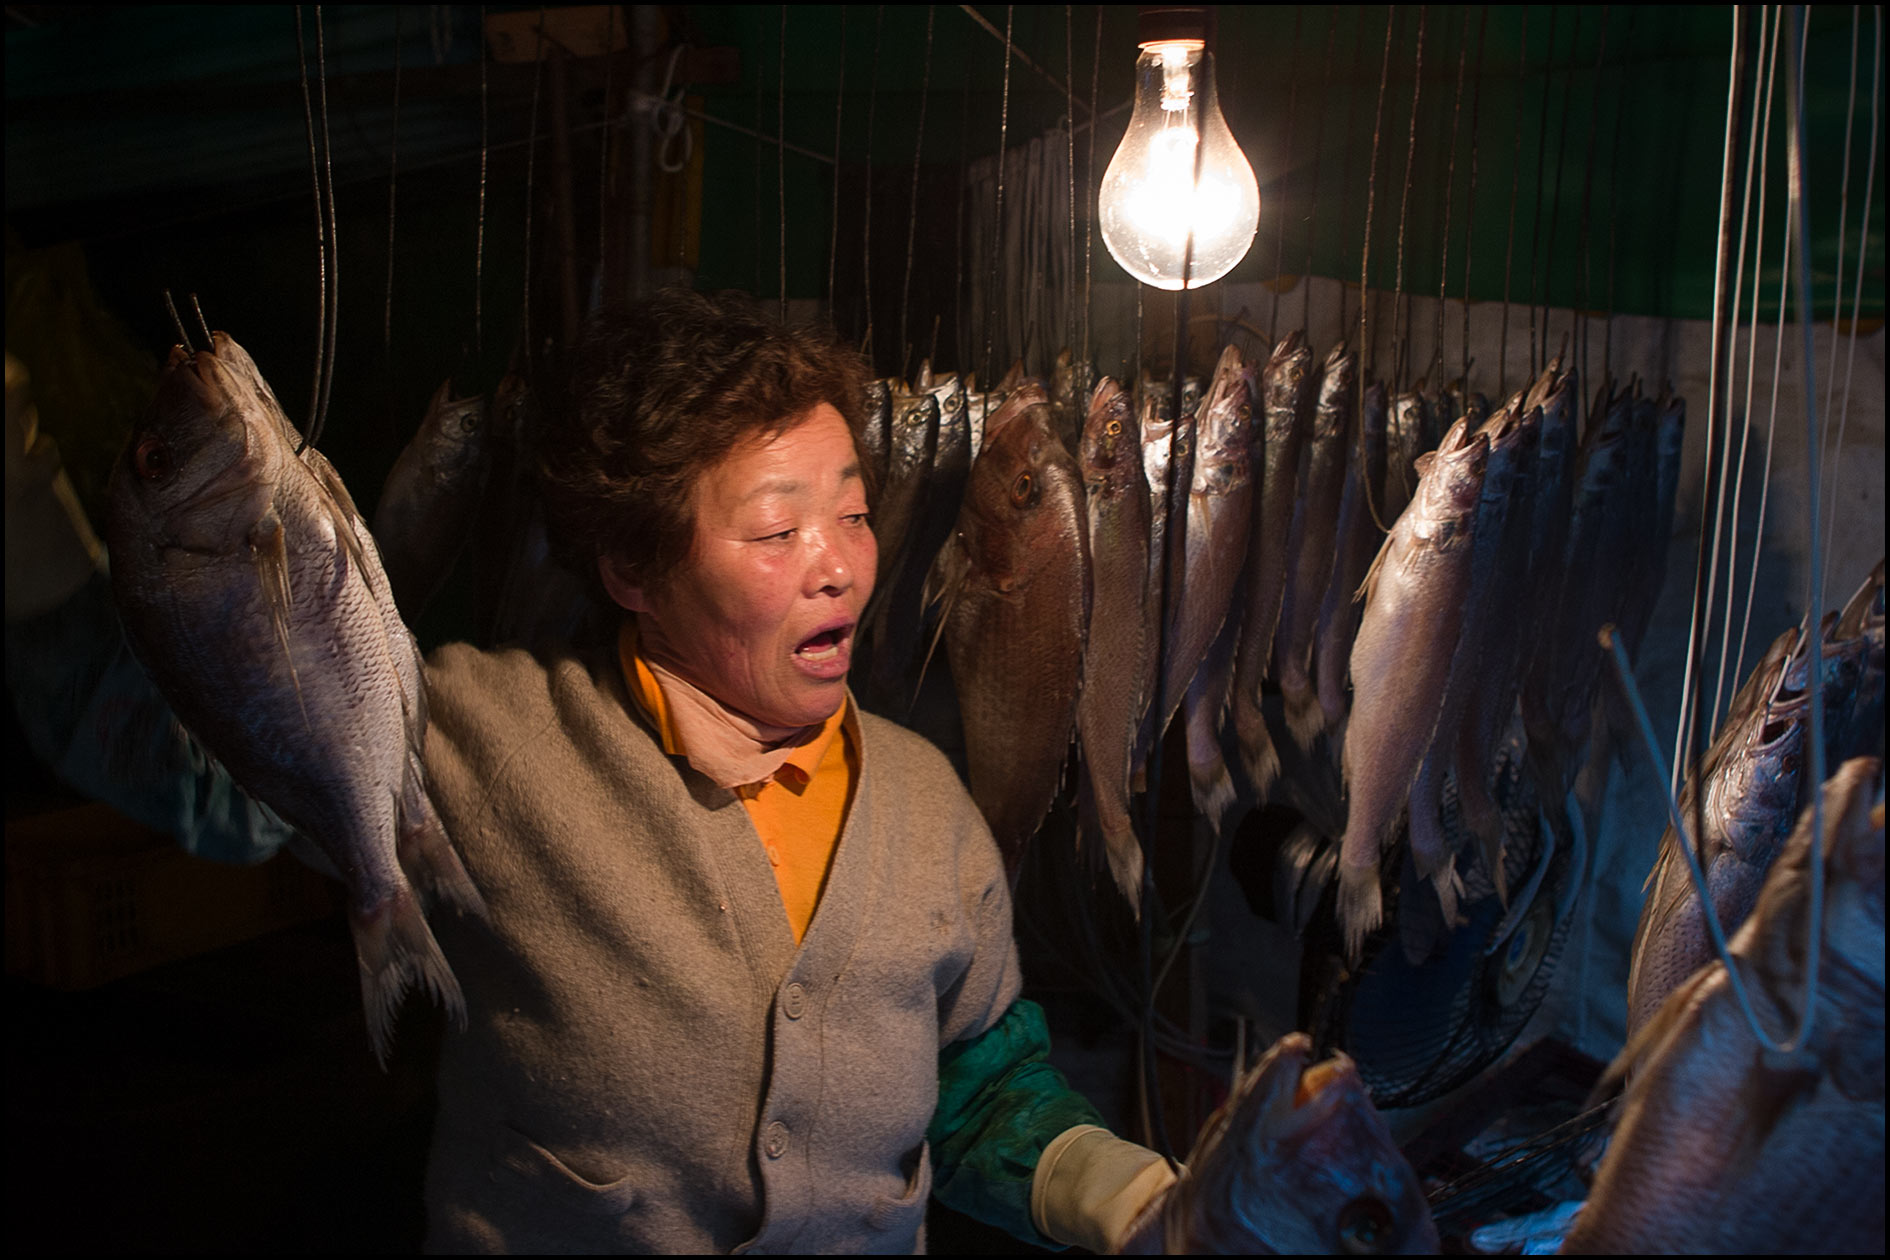 A woman handles hanging fresh fish on hooks inside a Korean market.